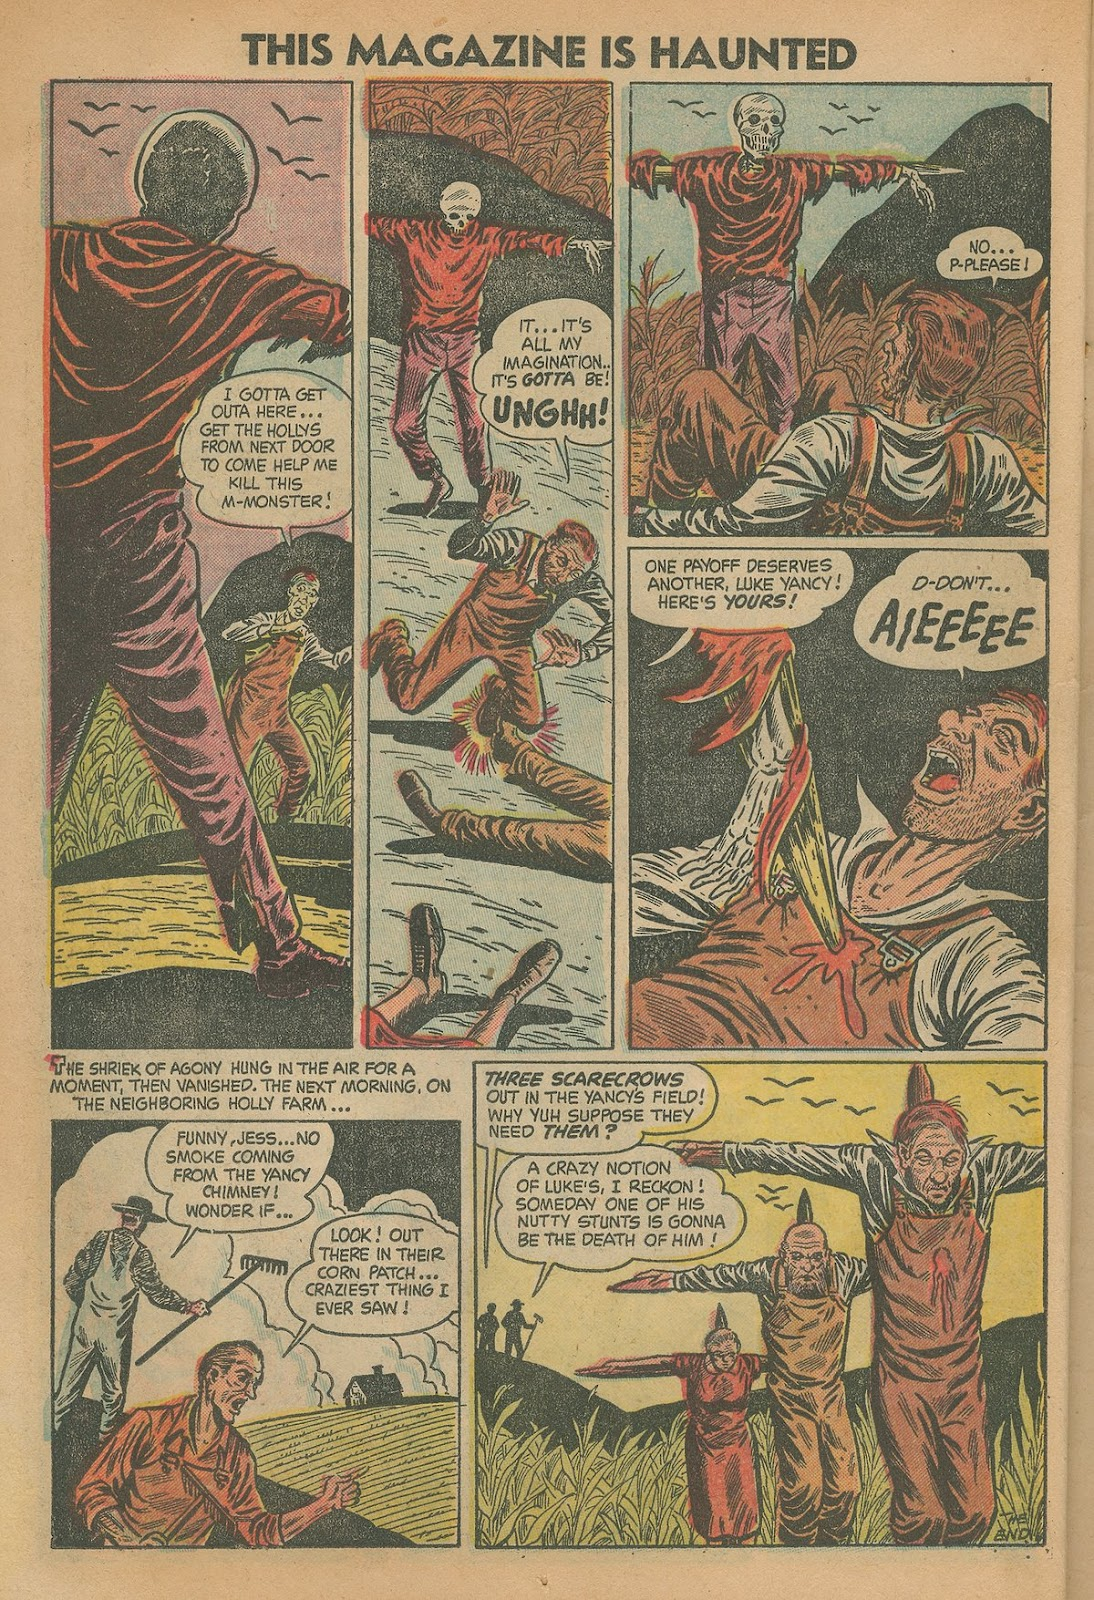 Read online This Magazine Is Haunted comic -  Issue #19 - 14